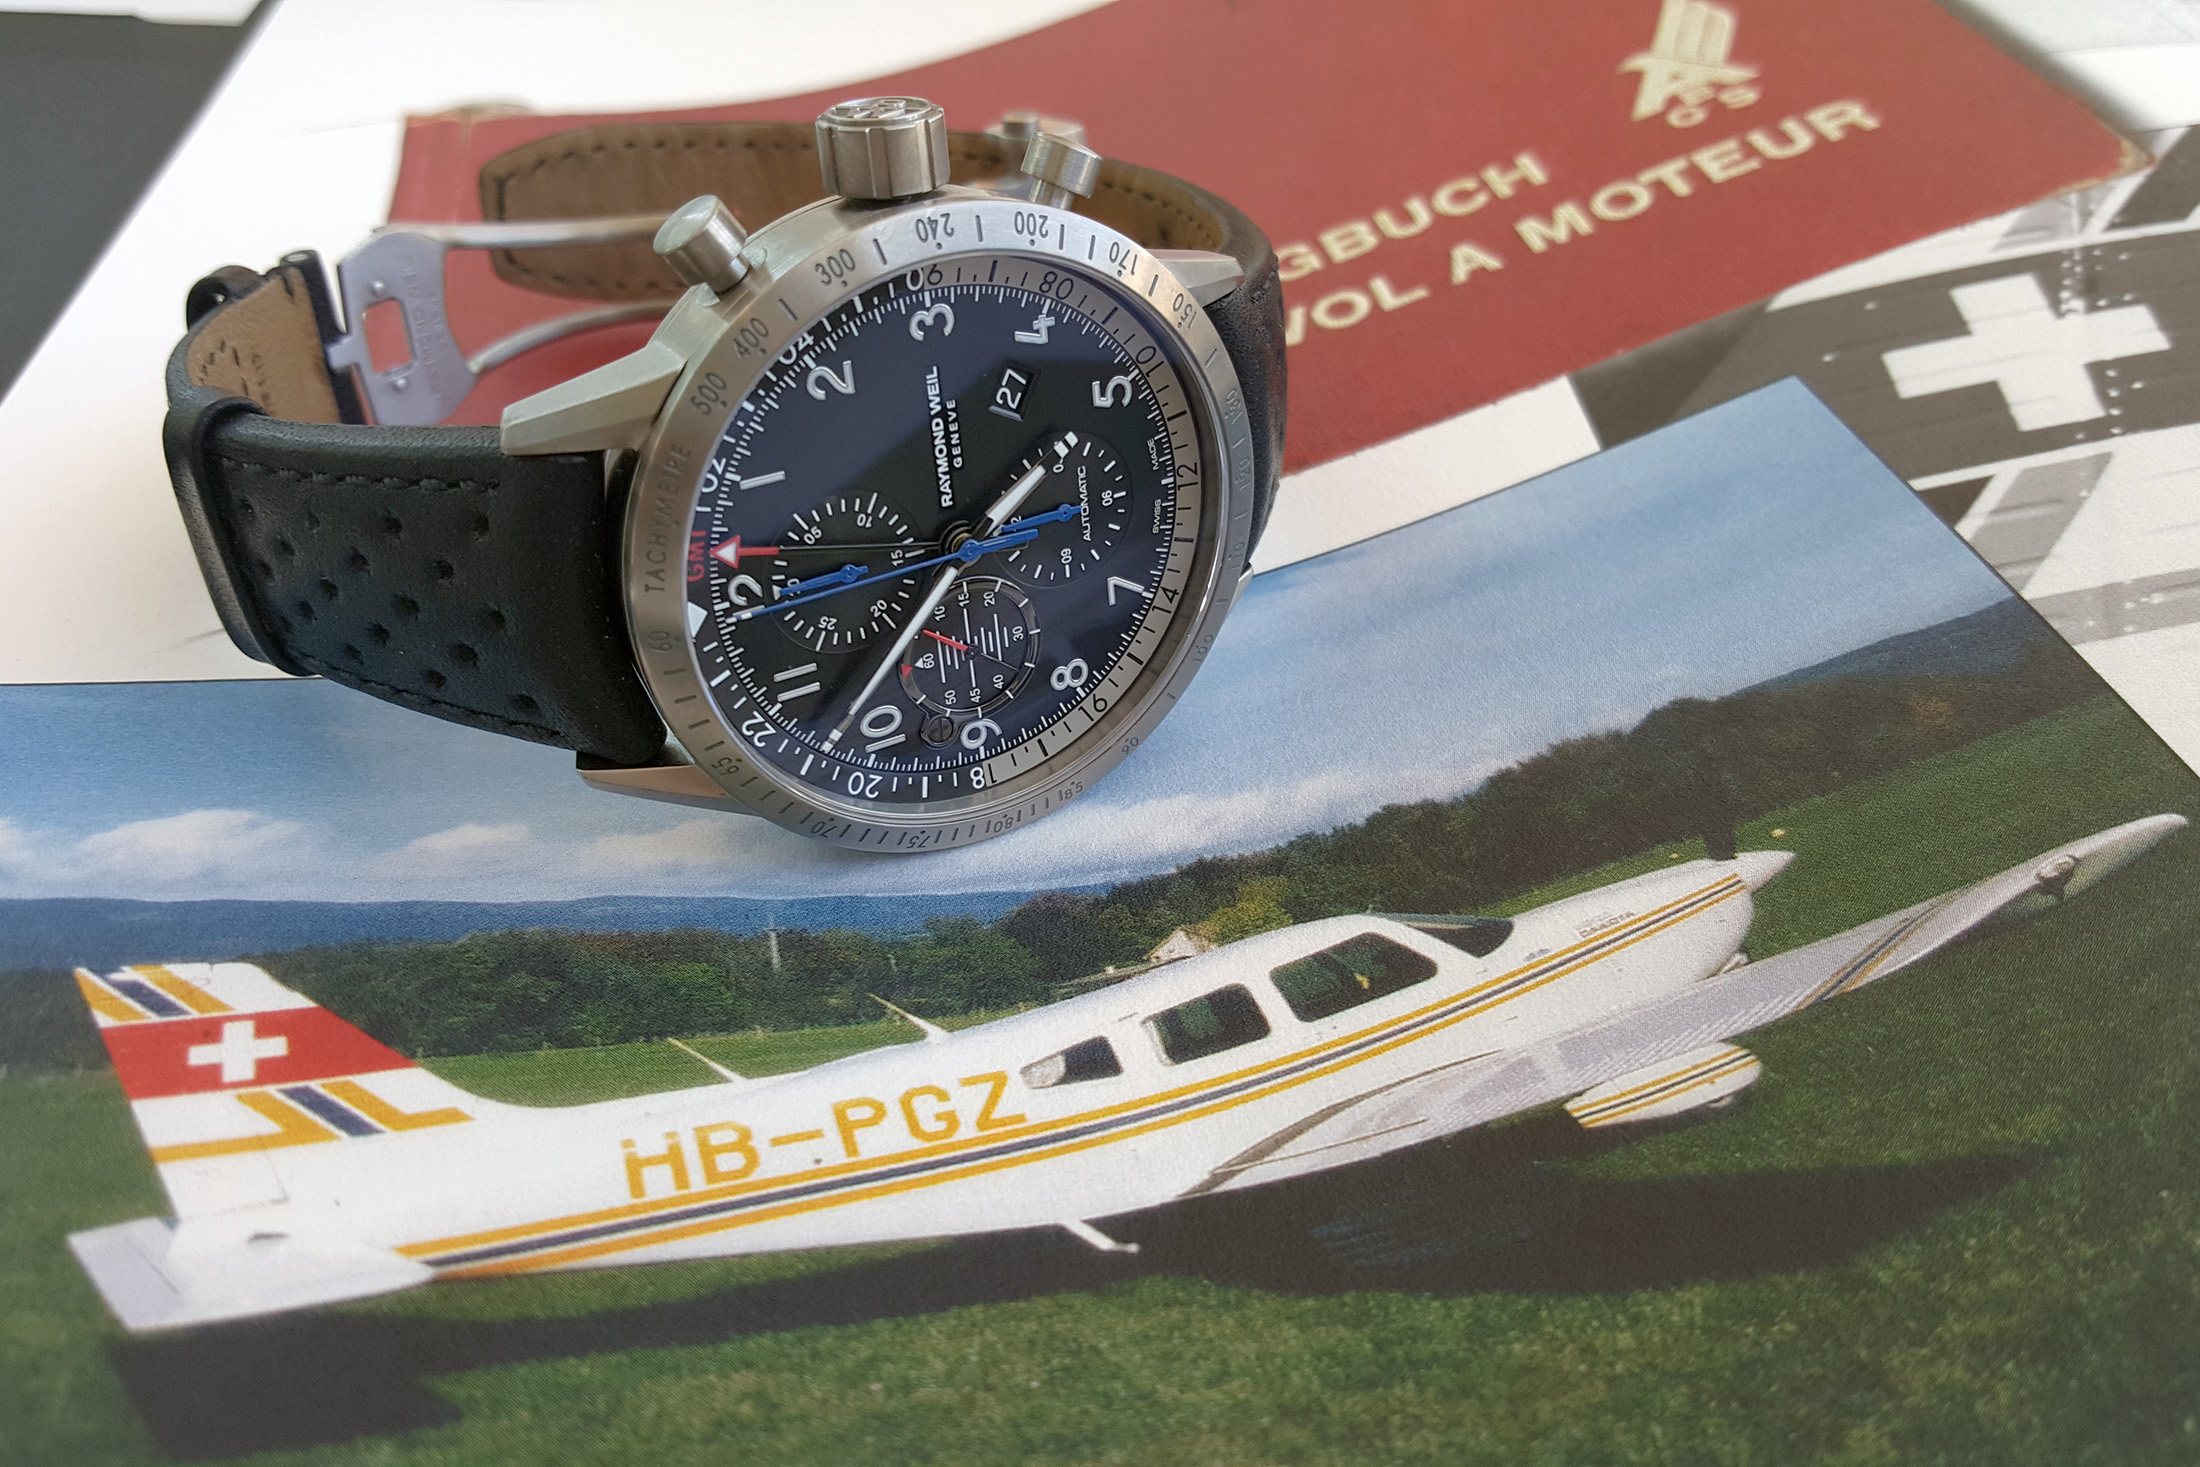 The new Freelancer Piper chronograph with a photograph of the plane that inspired its creation.